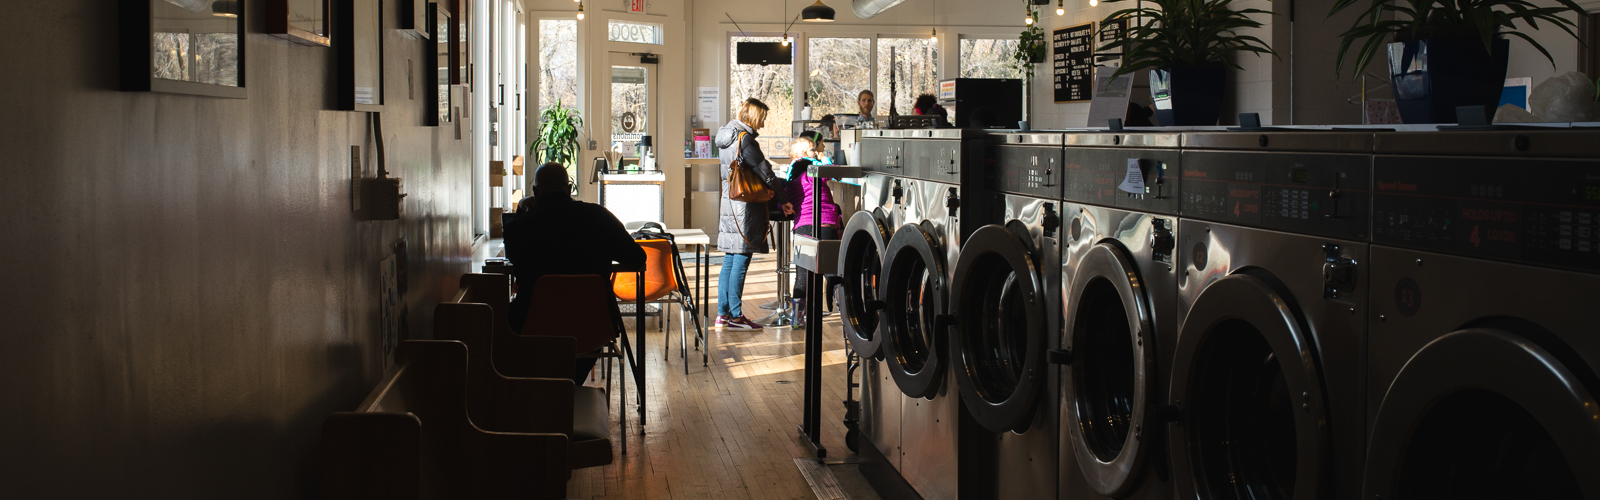 Laundromat at The Commons <span class='image-credits'>Steve Koss</span>